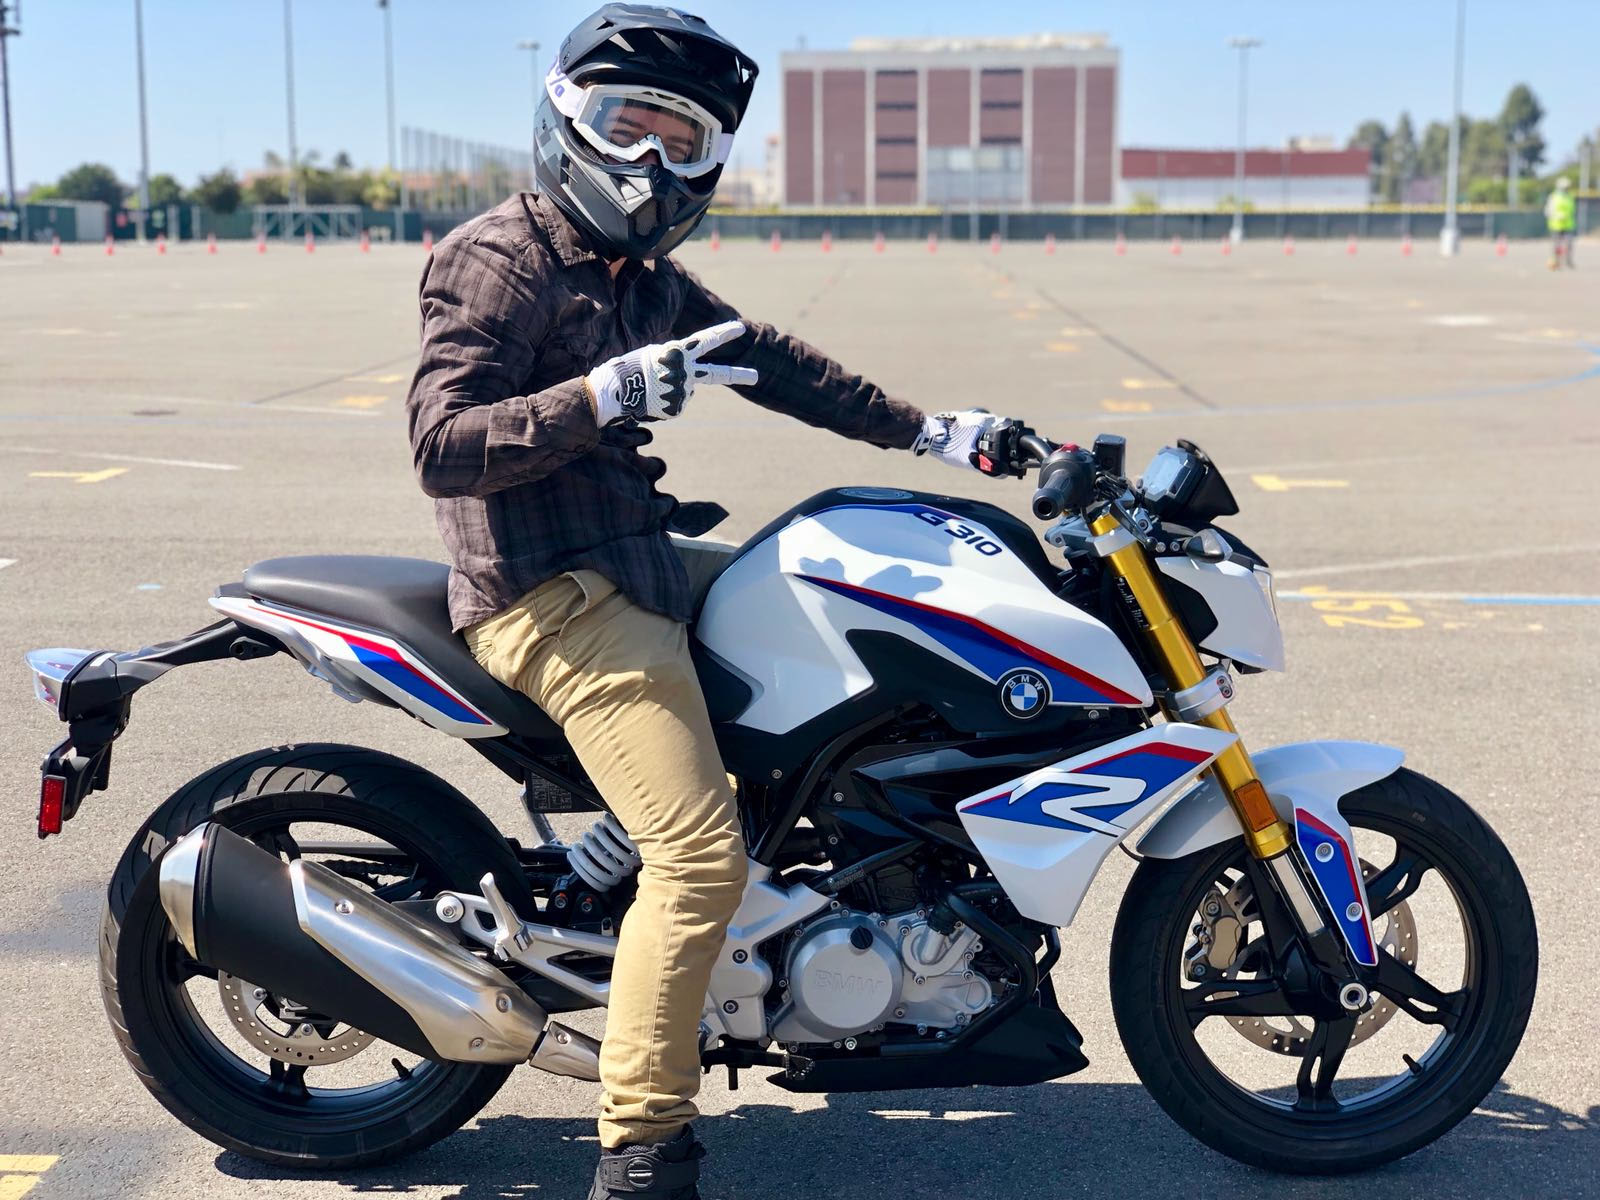 A Westside Motorcycle Academy student rides the BMW G 310 R during a course